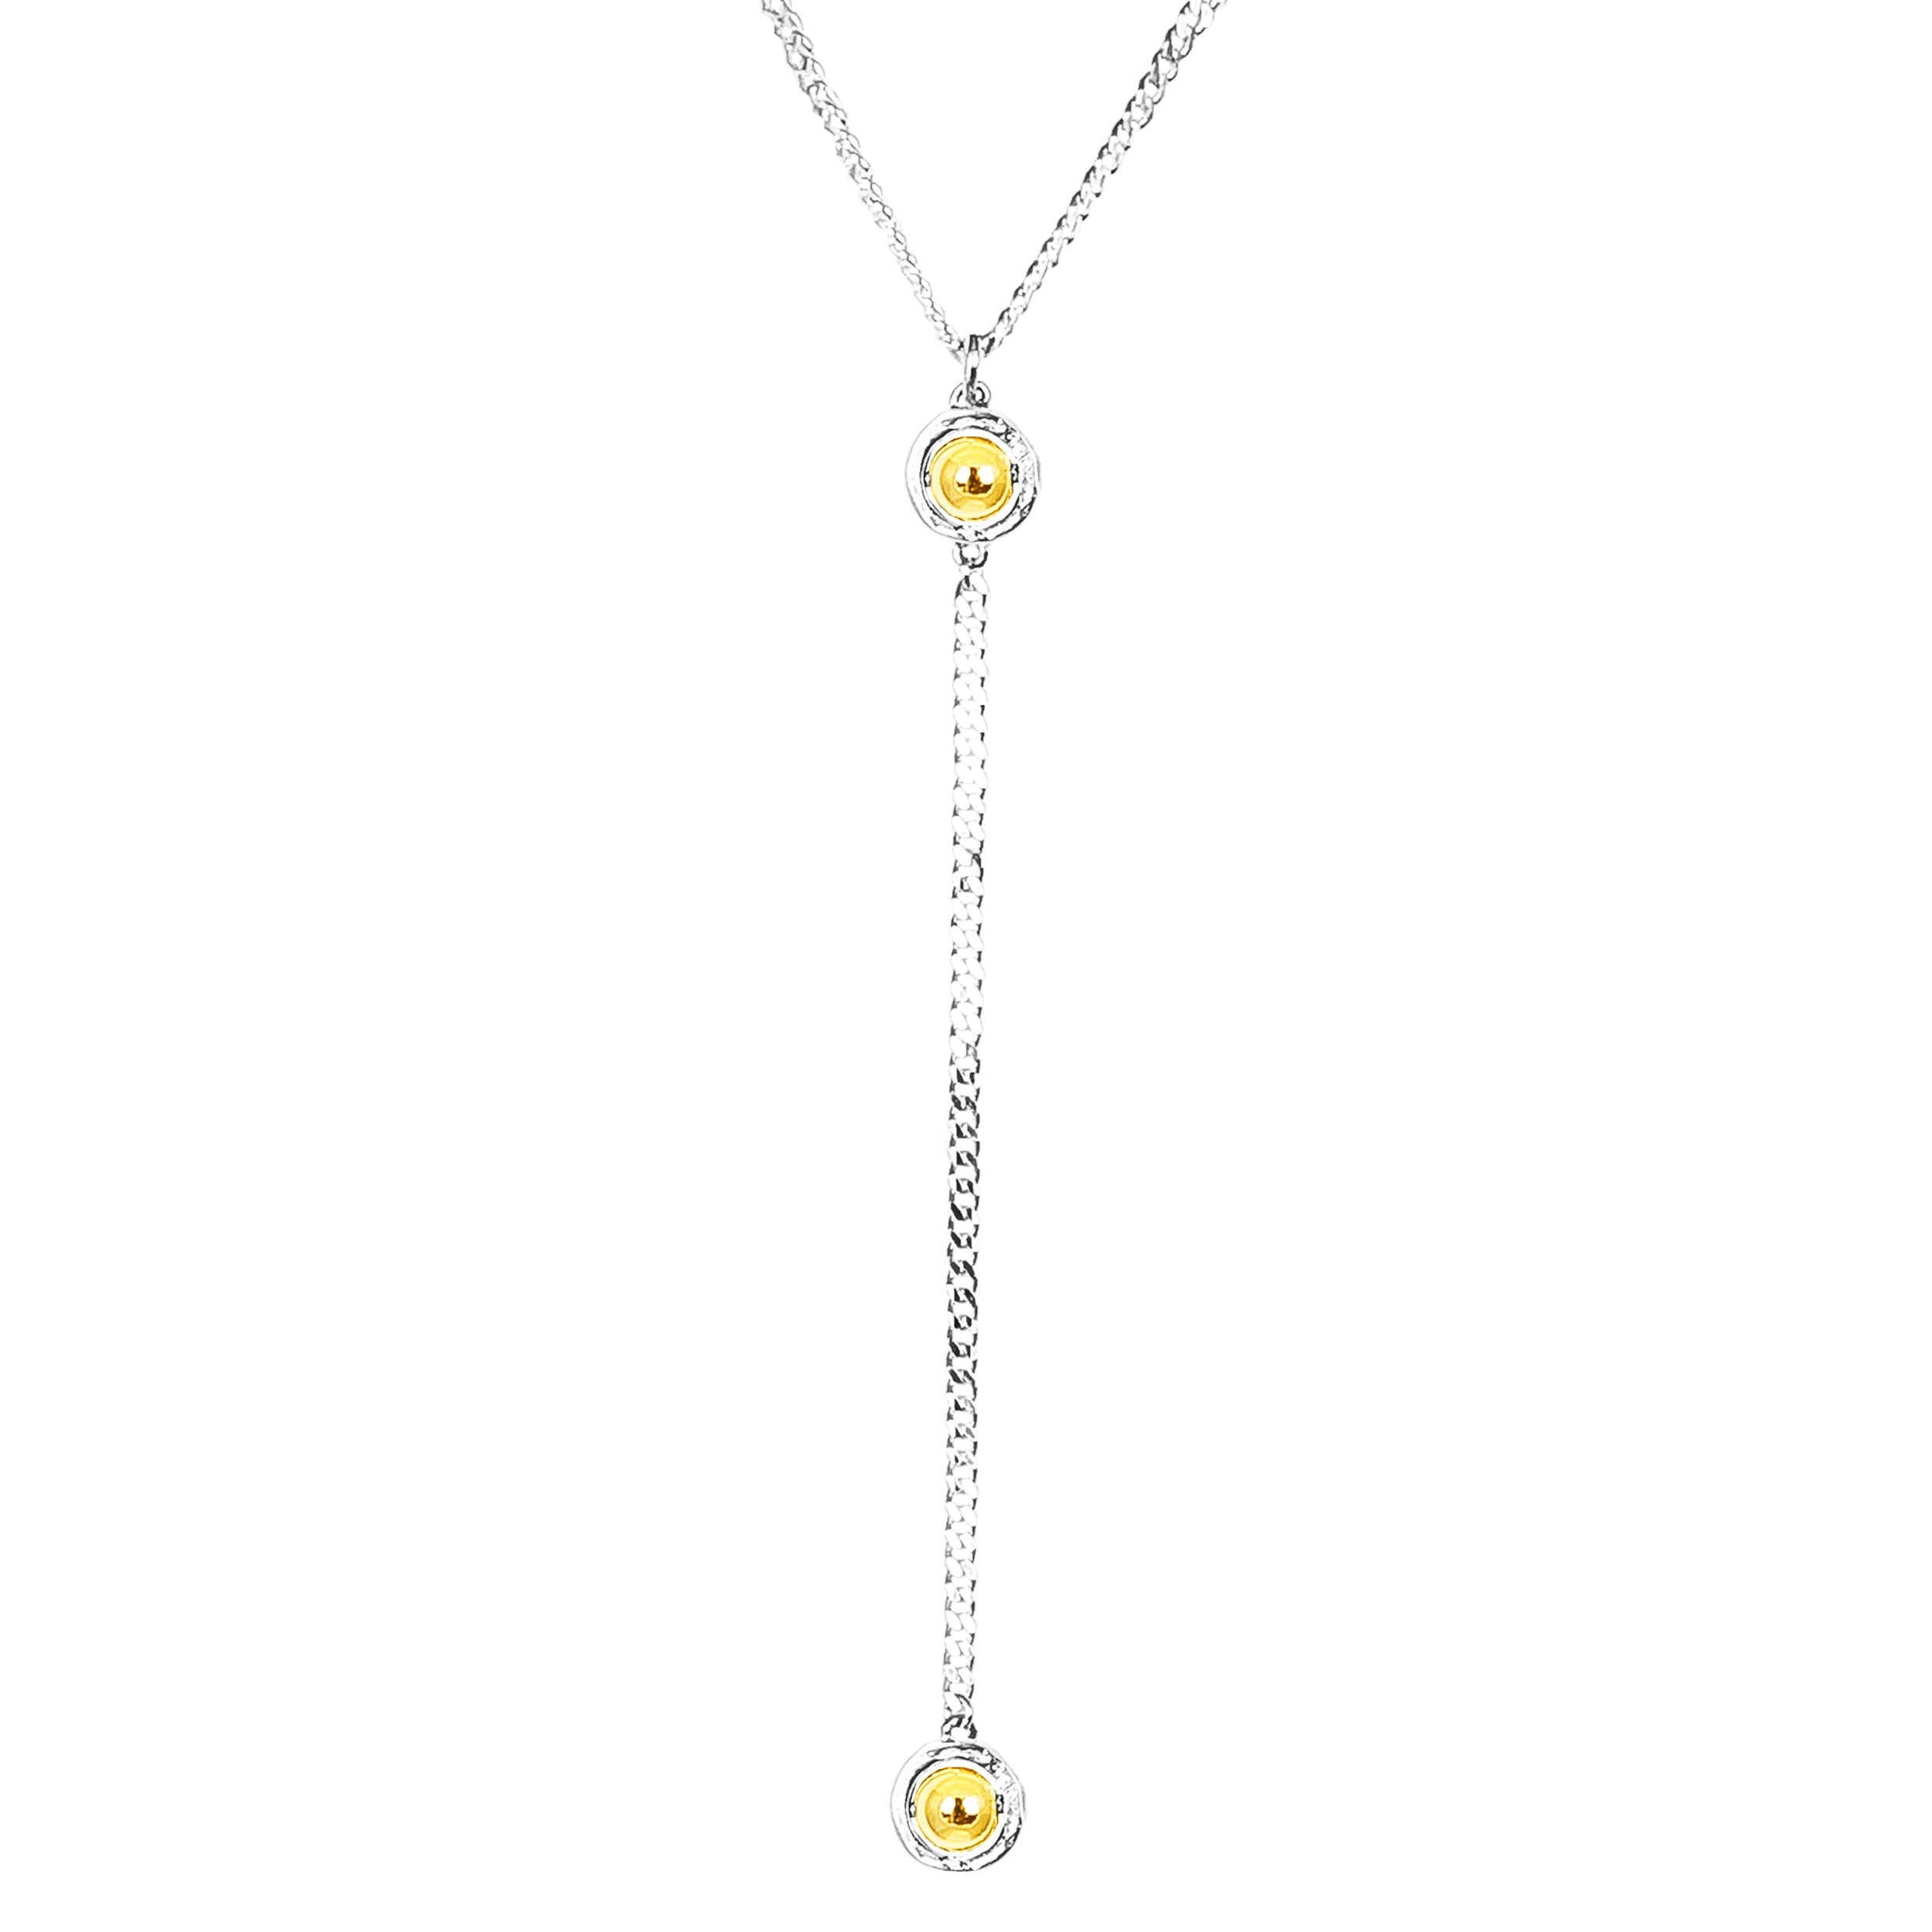 Atticus Medium Double Feature Lariet Necklace - Mid | Polished Gold Detail